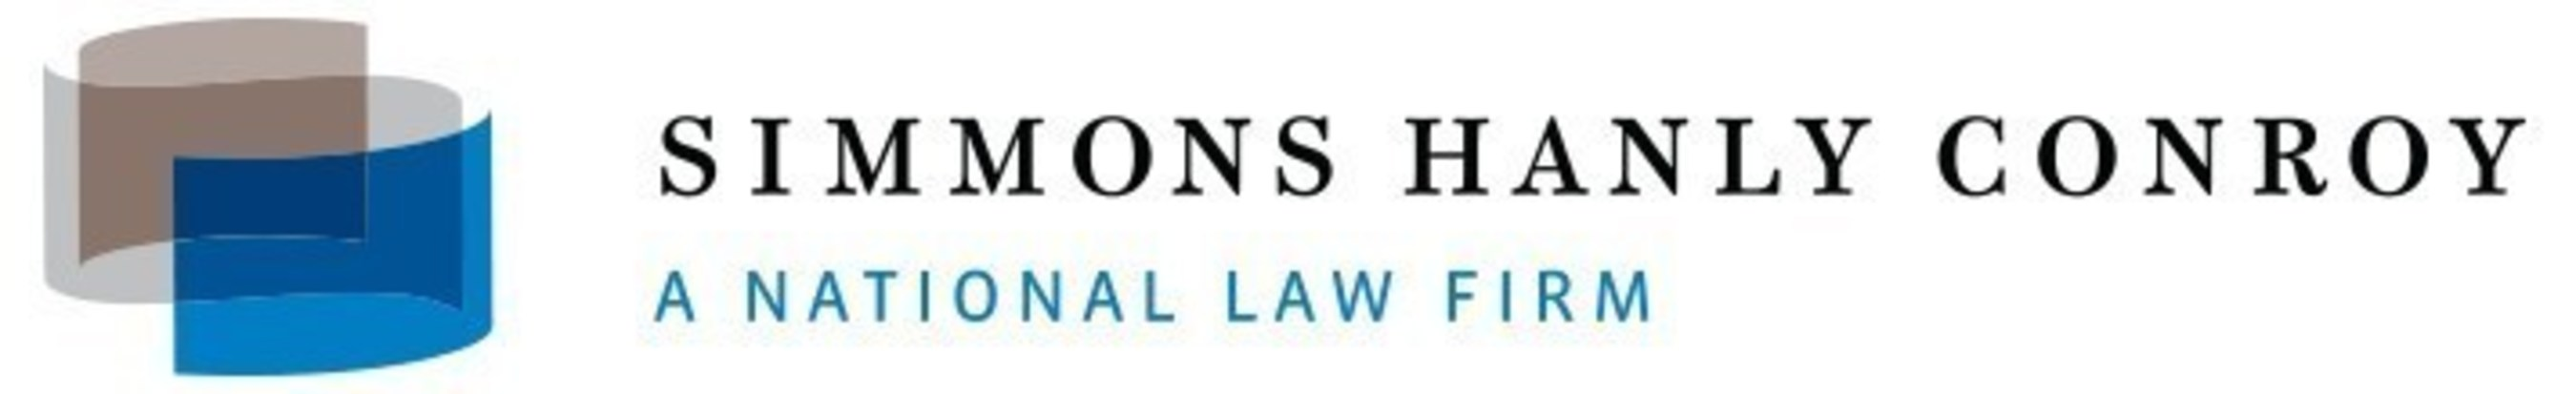 Simmons Hanly Conroy Highly Ranked in 2016 Edition of U.S. News/Best Lawyers 'Best Law Firms'